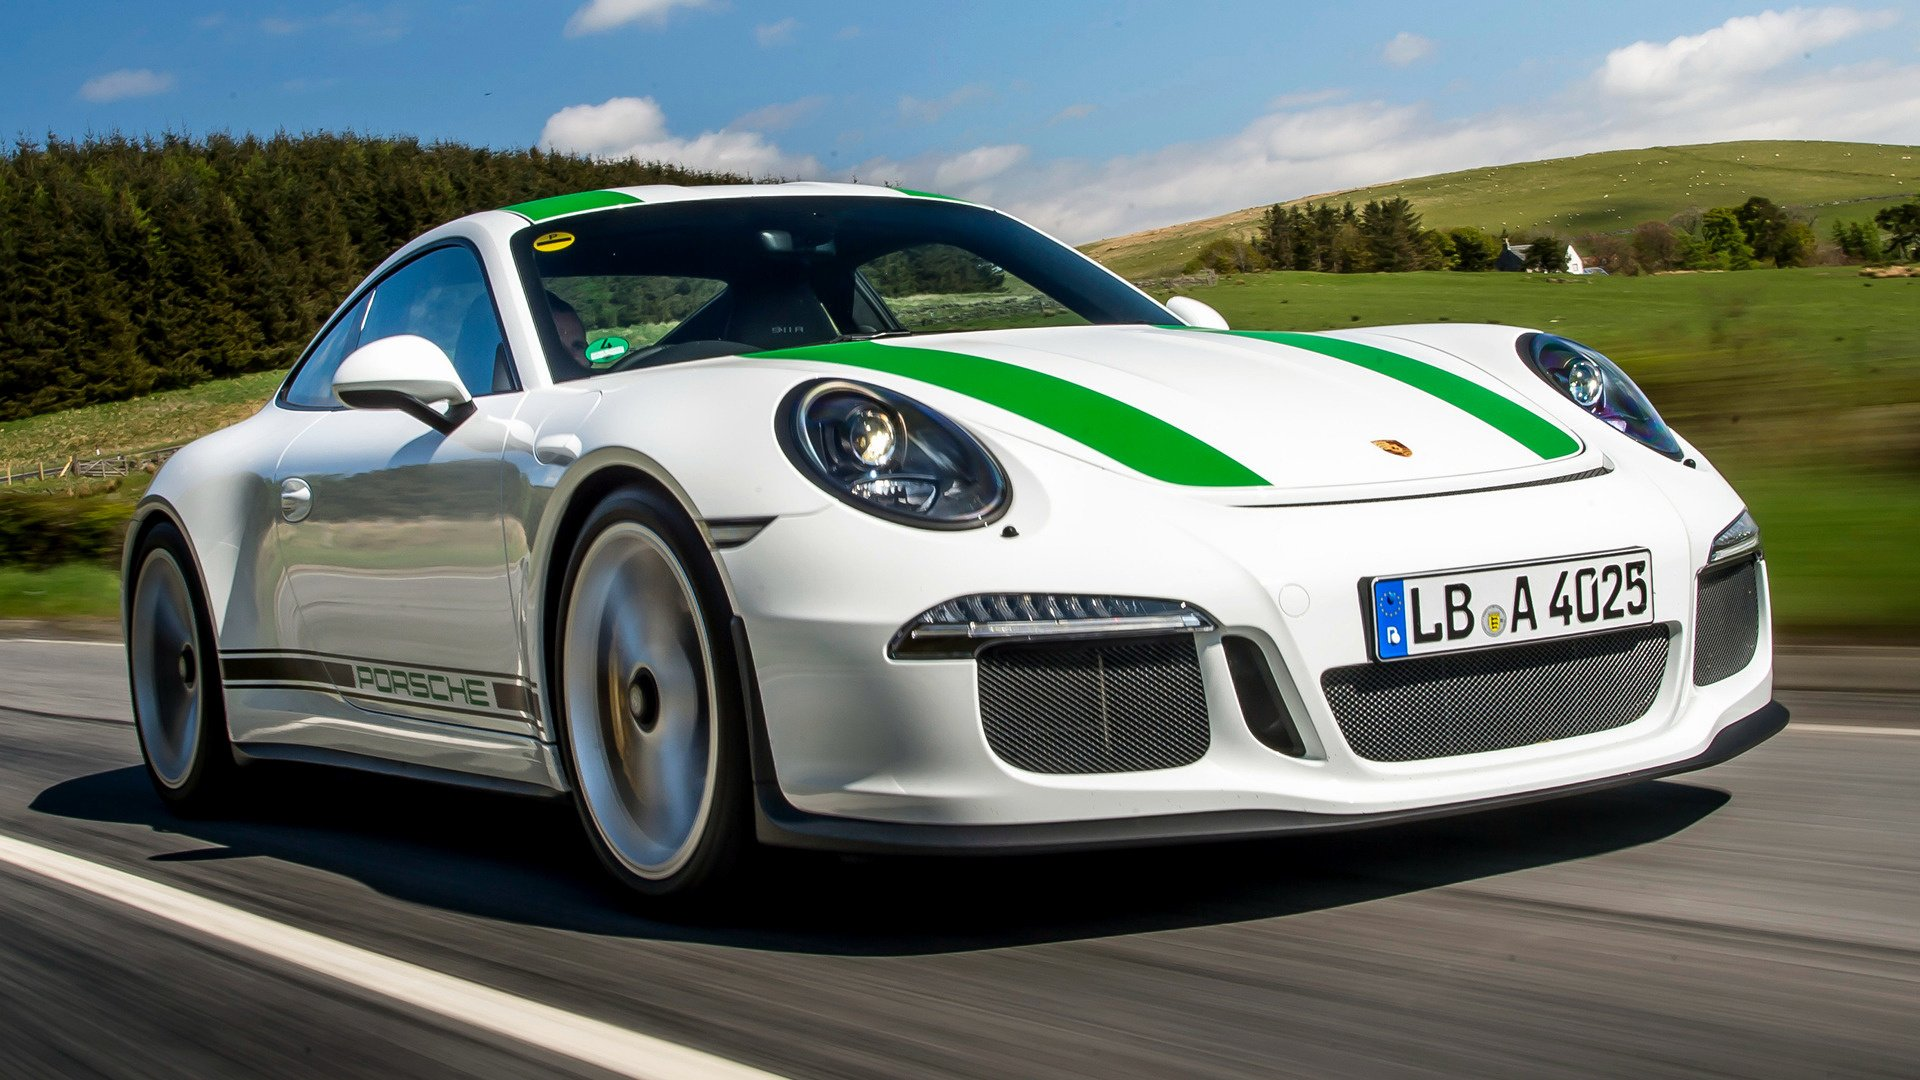 Porsche 911 R 2016 UK Wallpapers and HD Images   Car Pixel 1920x1080